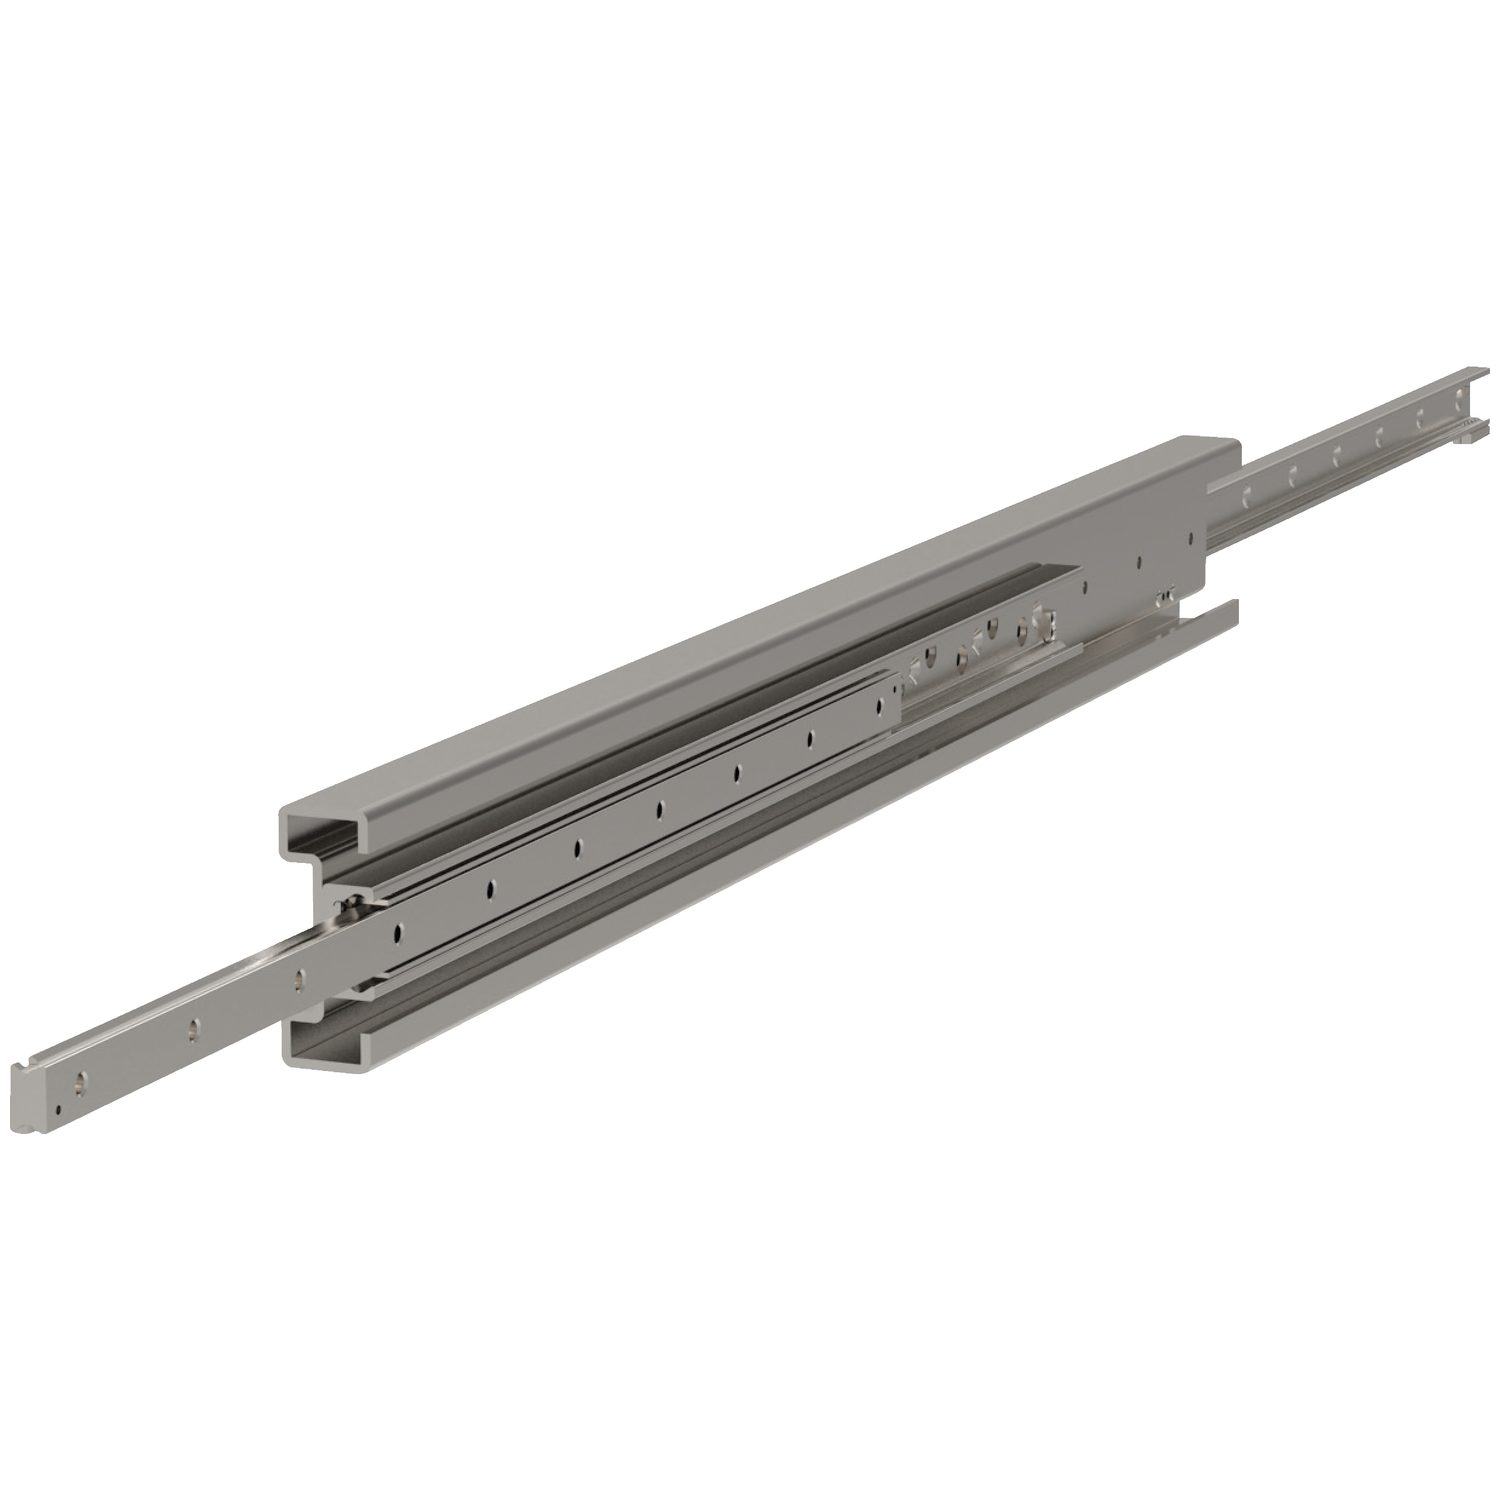 Fully Telescopic Slides Our lightest duty telescopic slides. Still from cold-drawn steel buth with unhardened raceways.